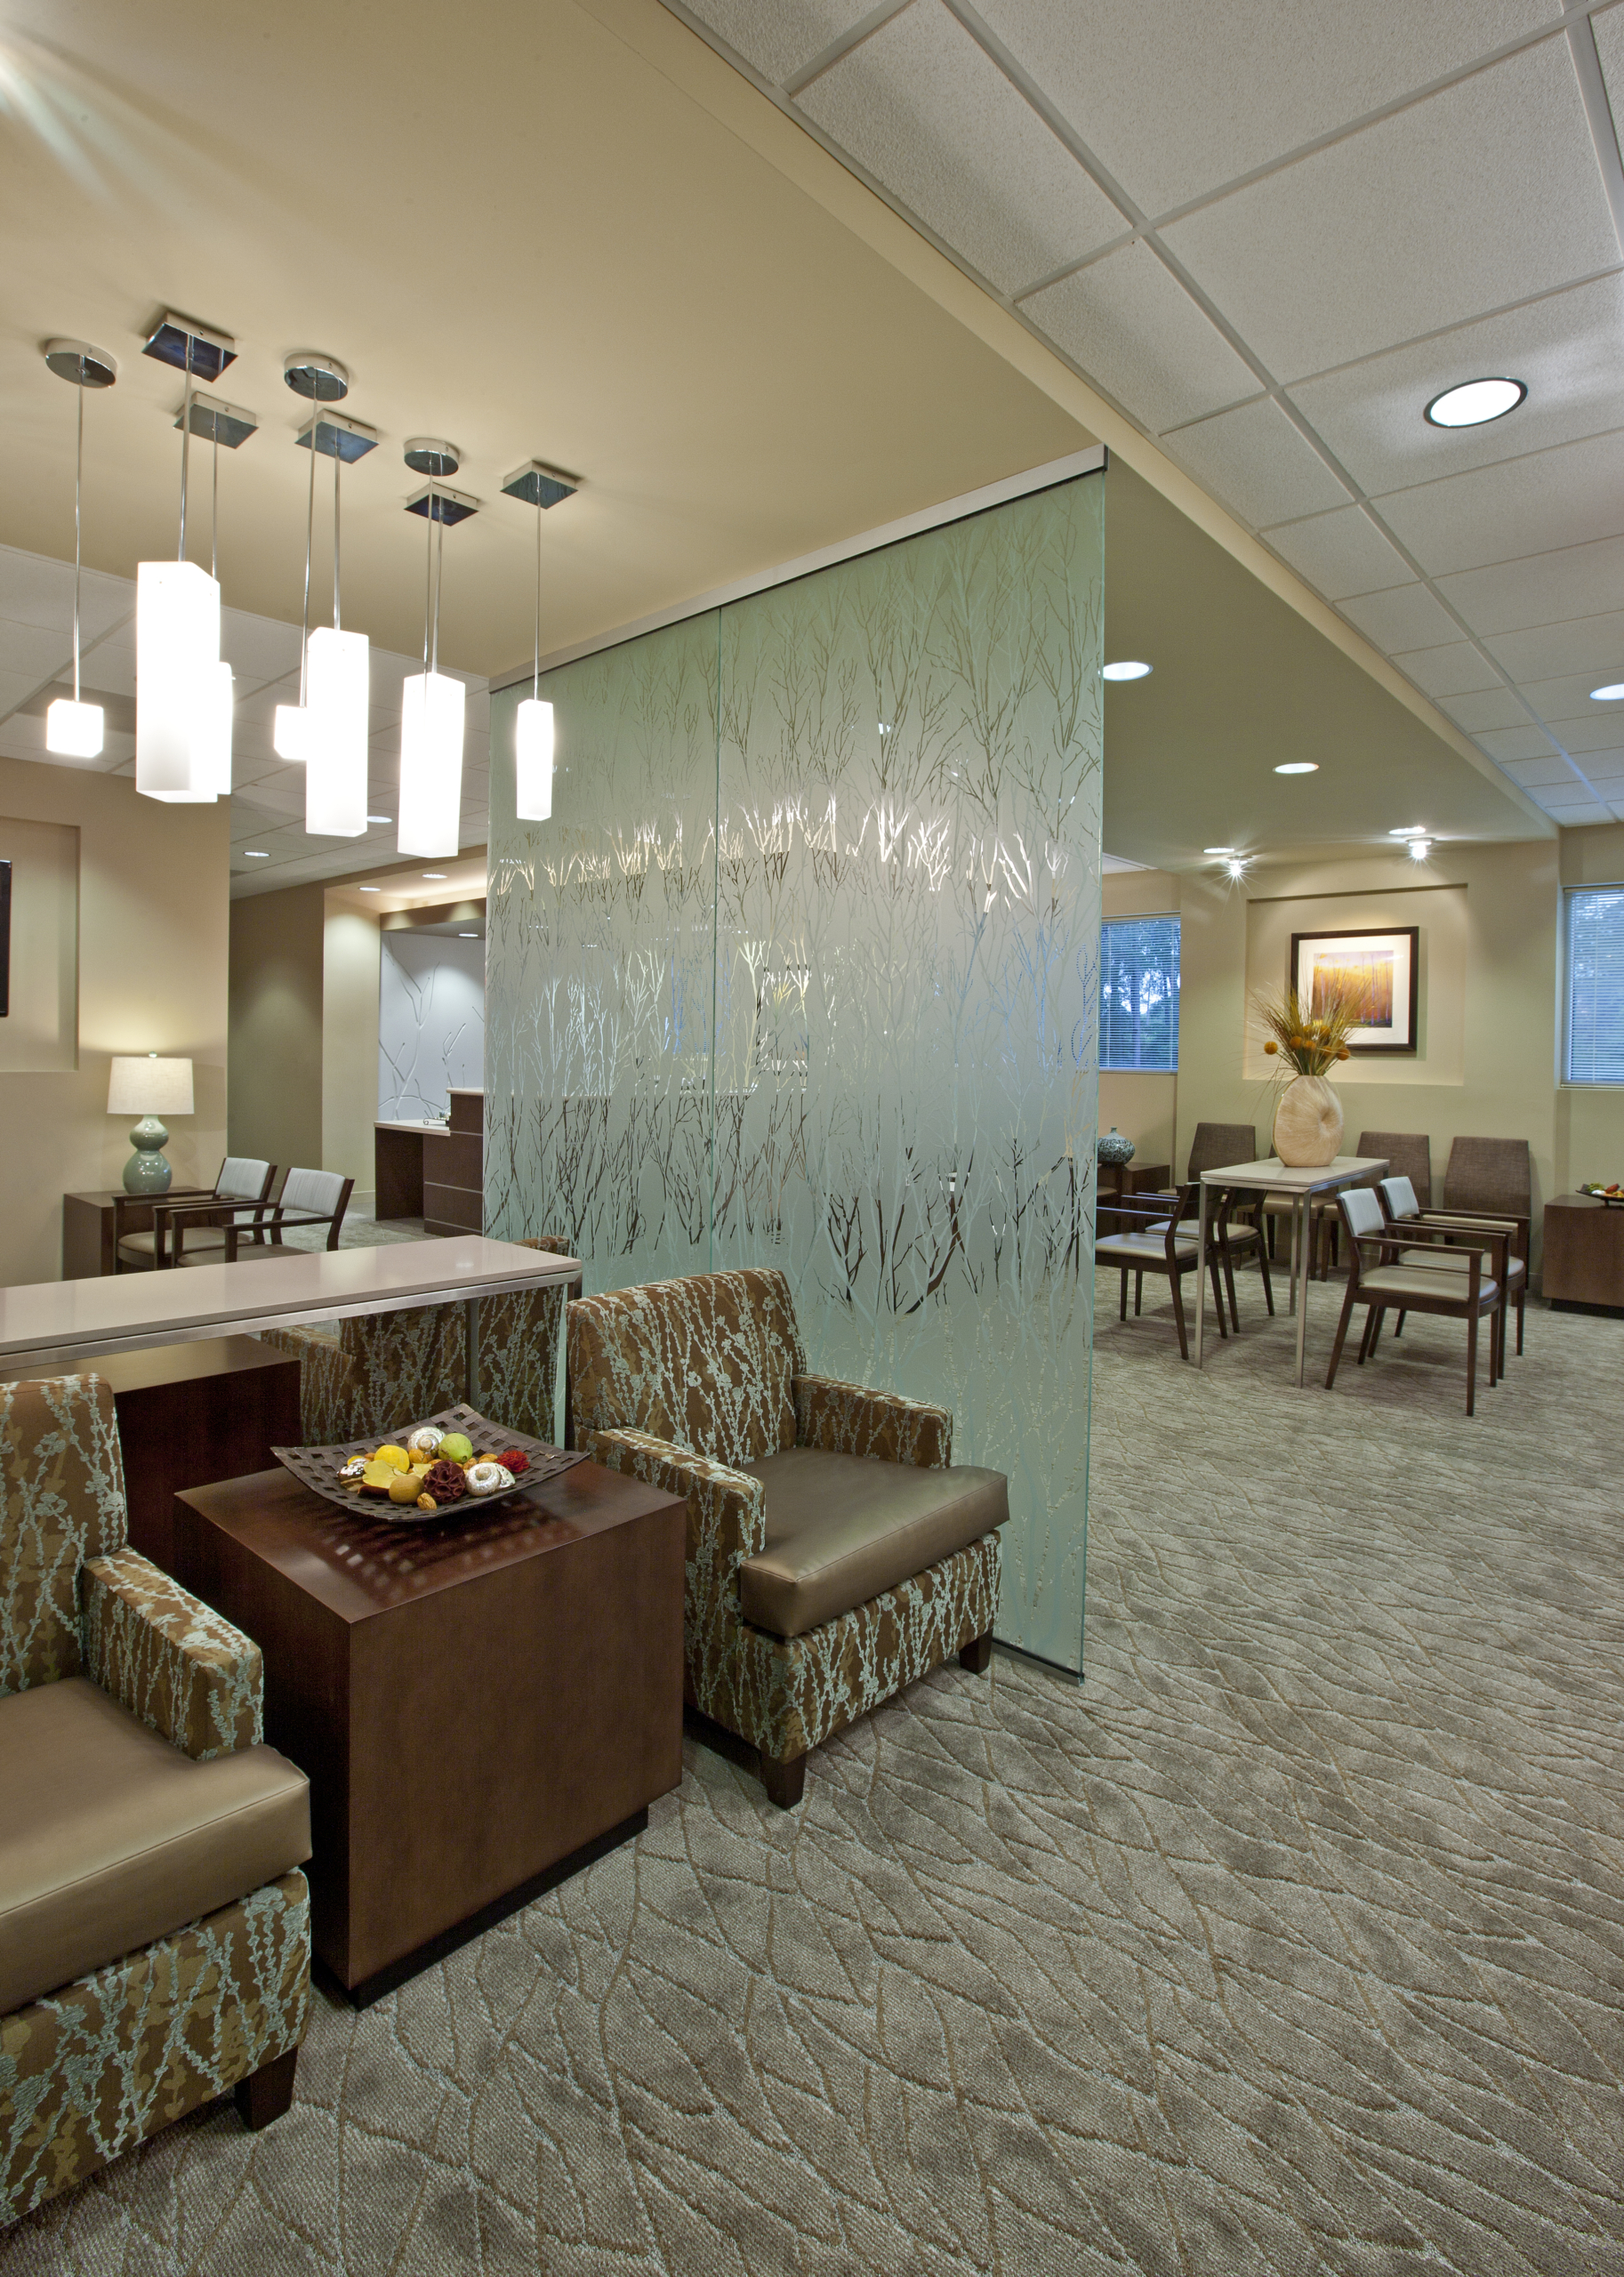 Sleep Center Lobby